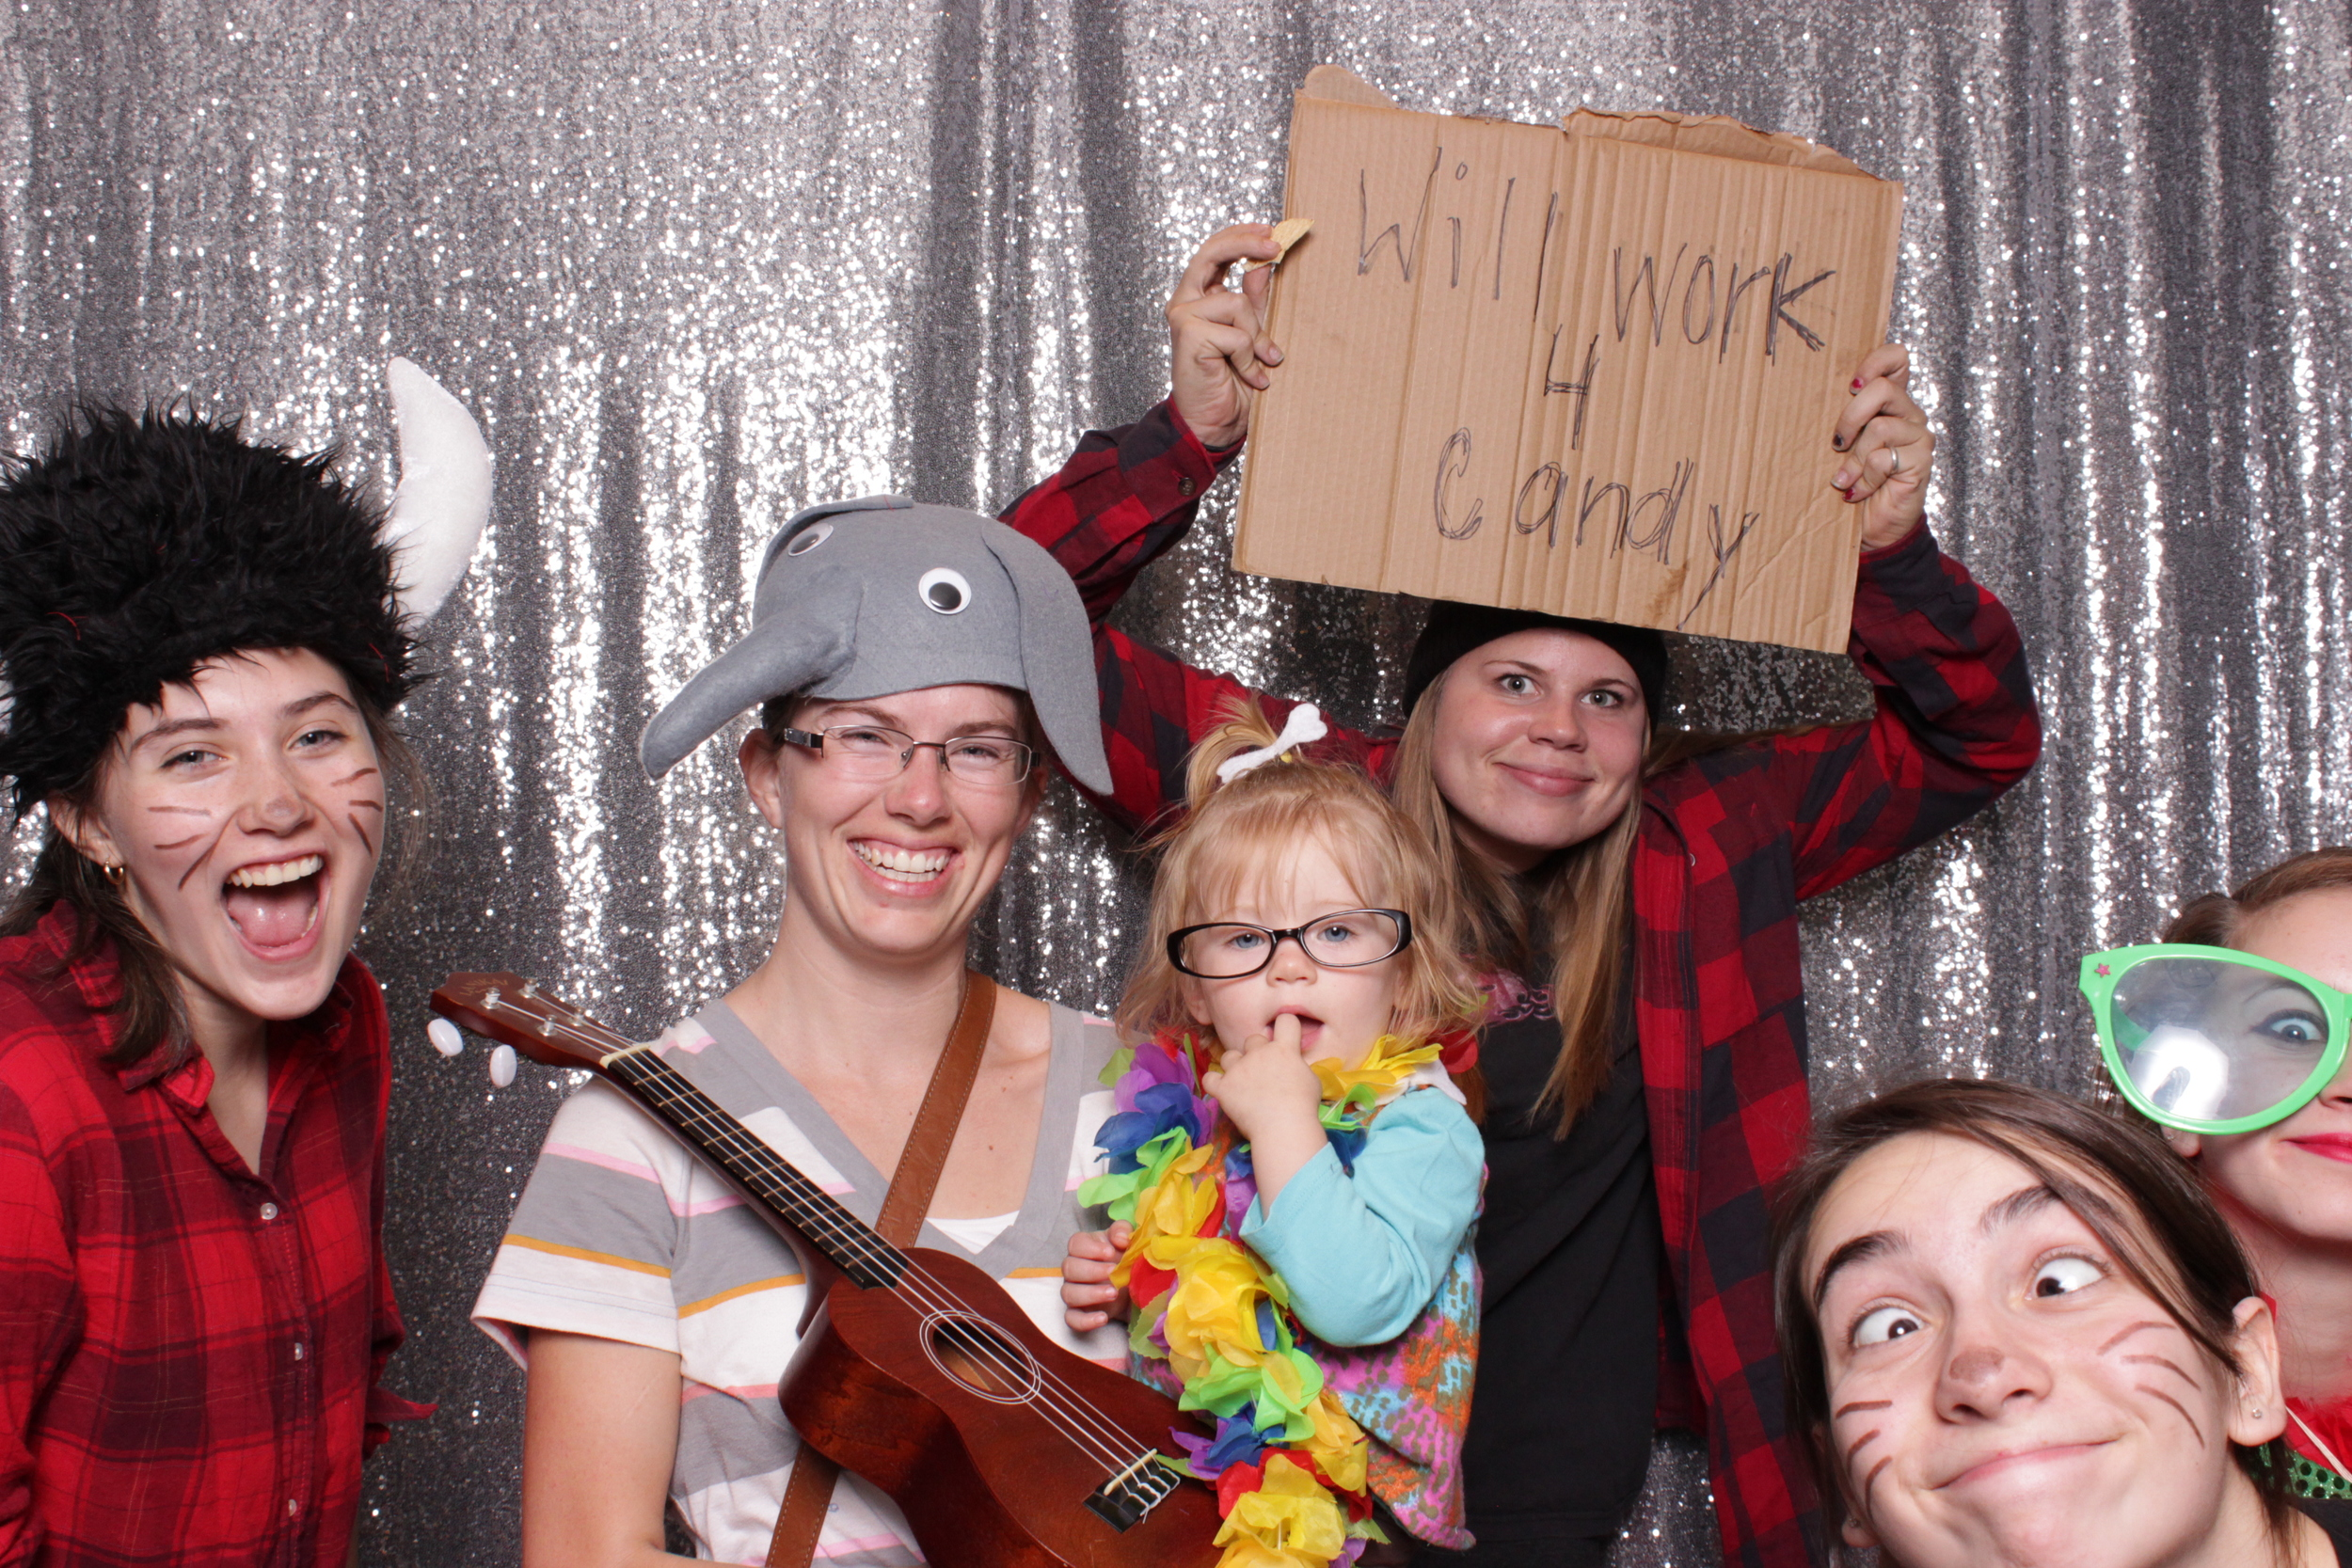 Love when people really pack it into the photo booth area for large group shots that you could never do in a traditional photo booth!